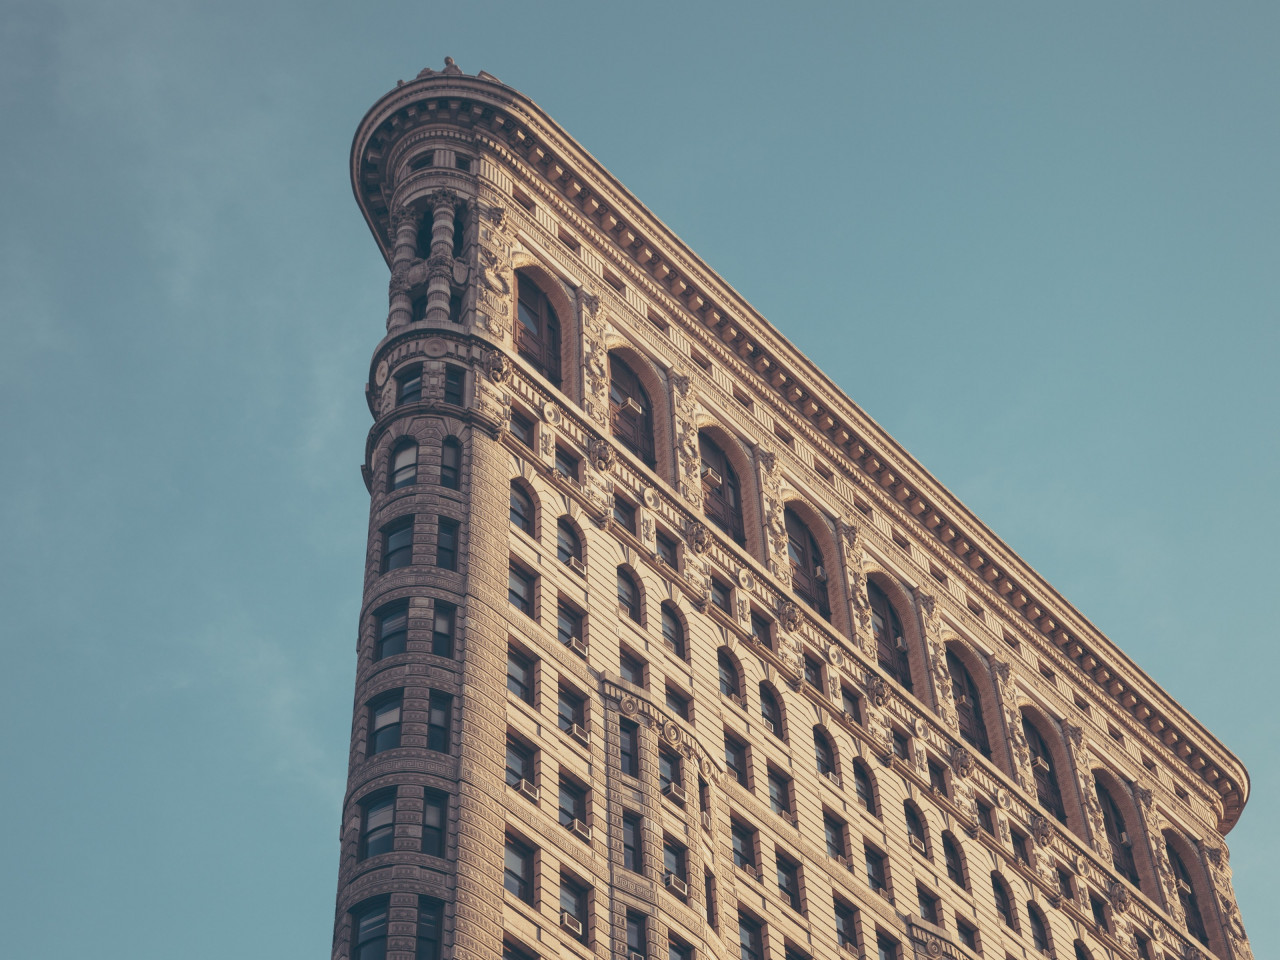 Flatiron building in New York wallpaper 1280x960